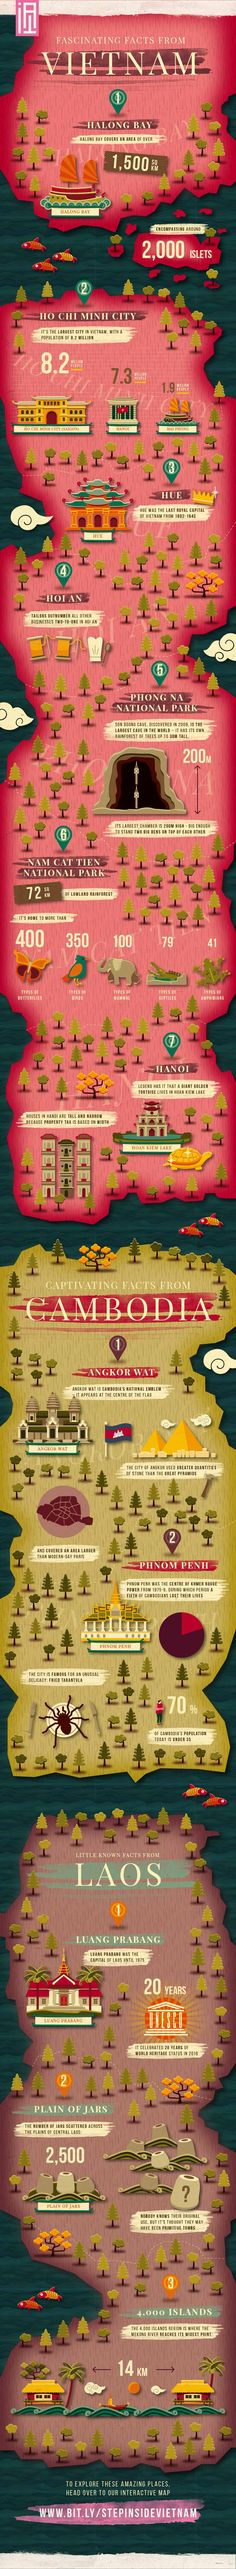 Fascinating facts from Indochina. Infographic showcasing Vietnam, Cambodia & Laos.